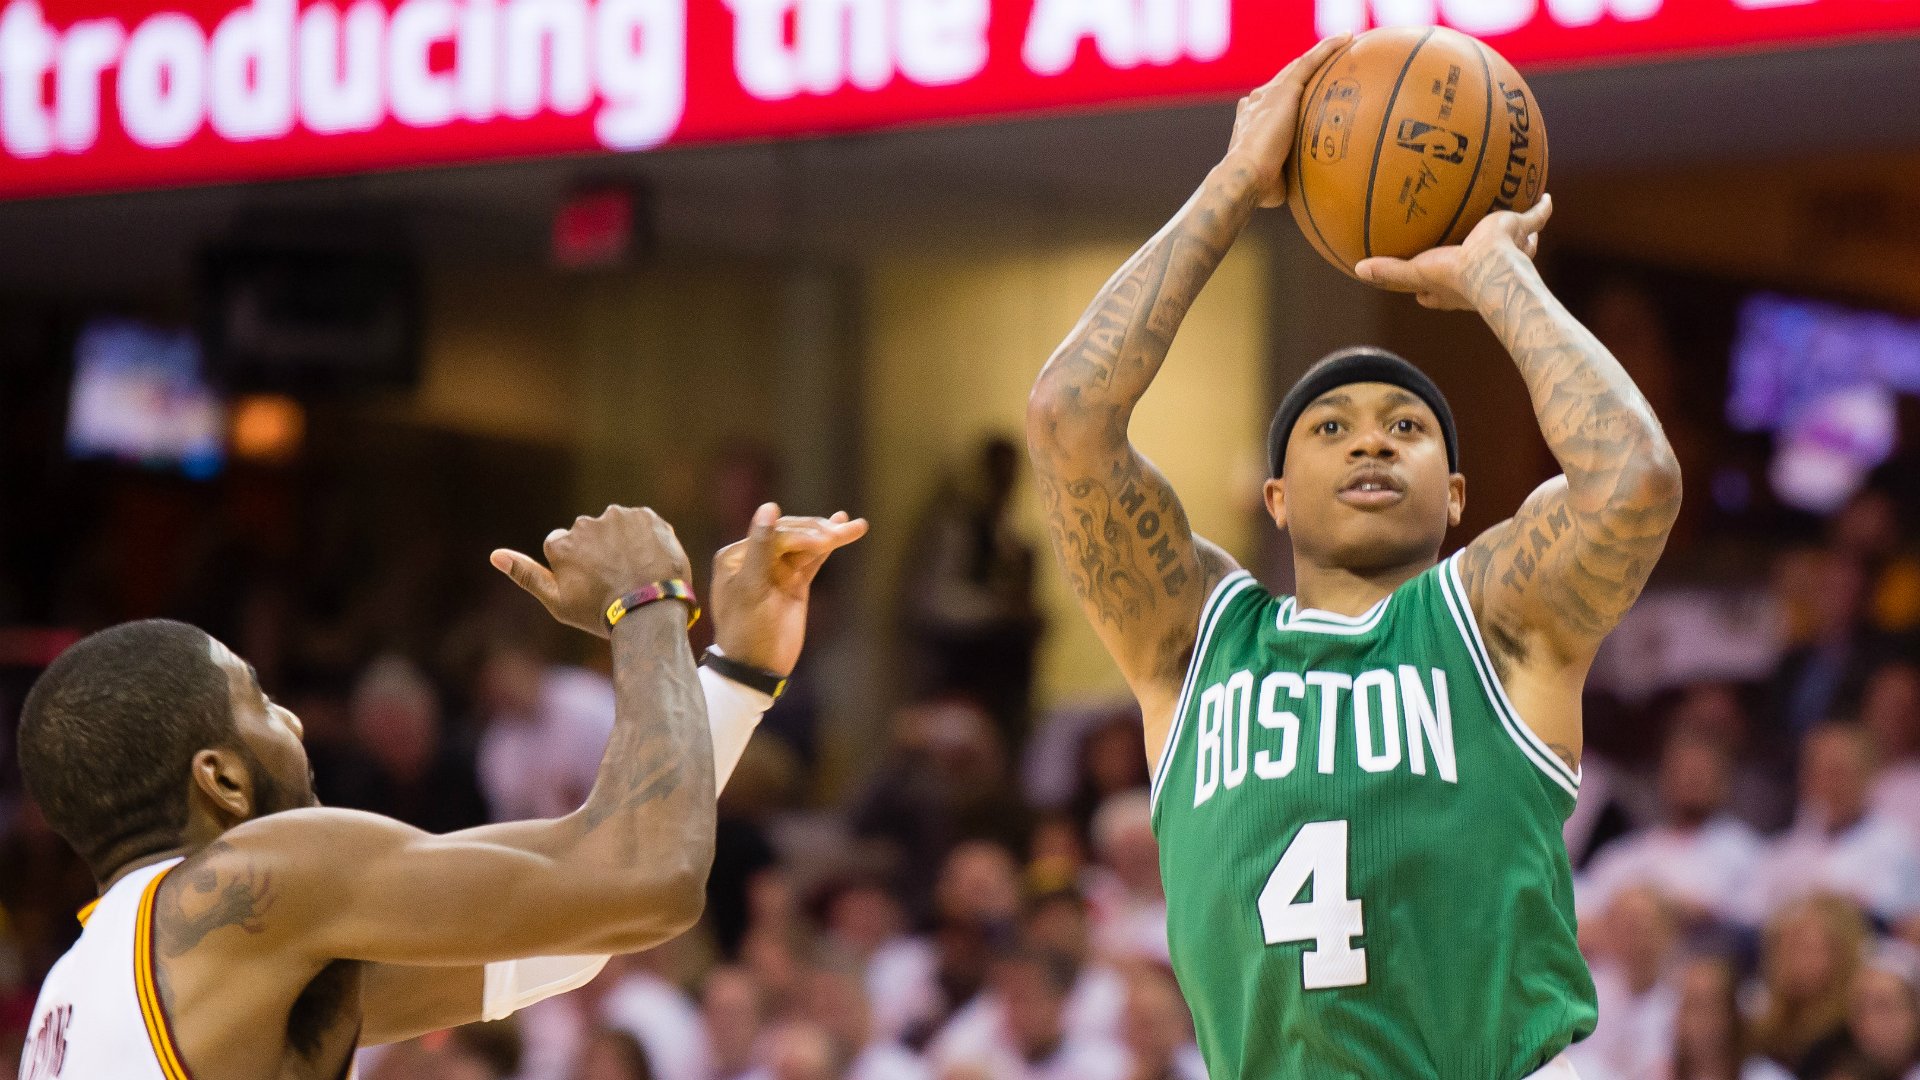 Celtics' Isaiah Thomas on Sixth Man of the Year snub: 'Numbers don't lie'